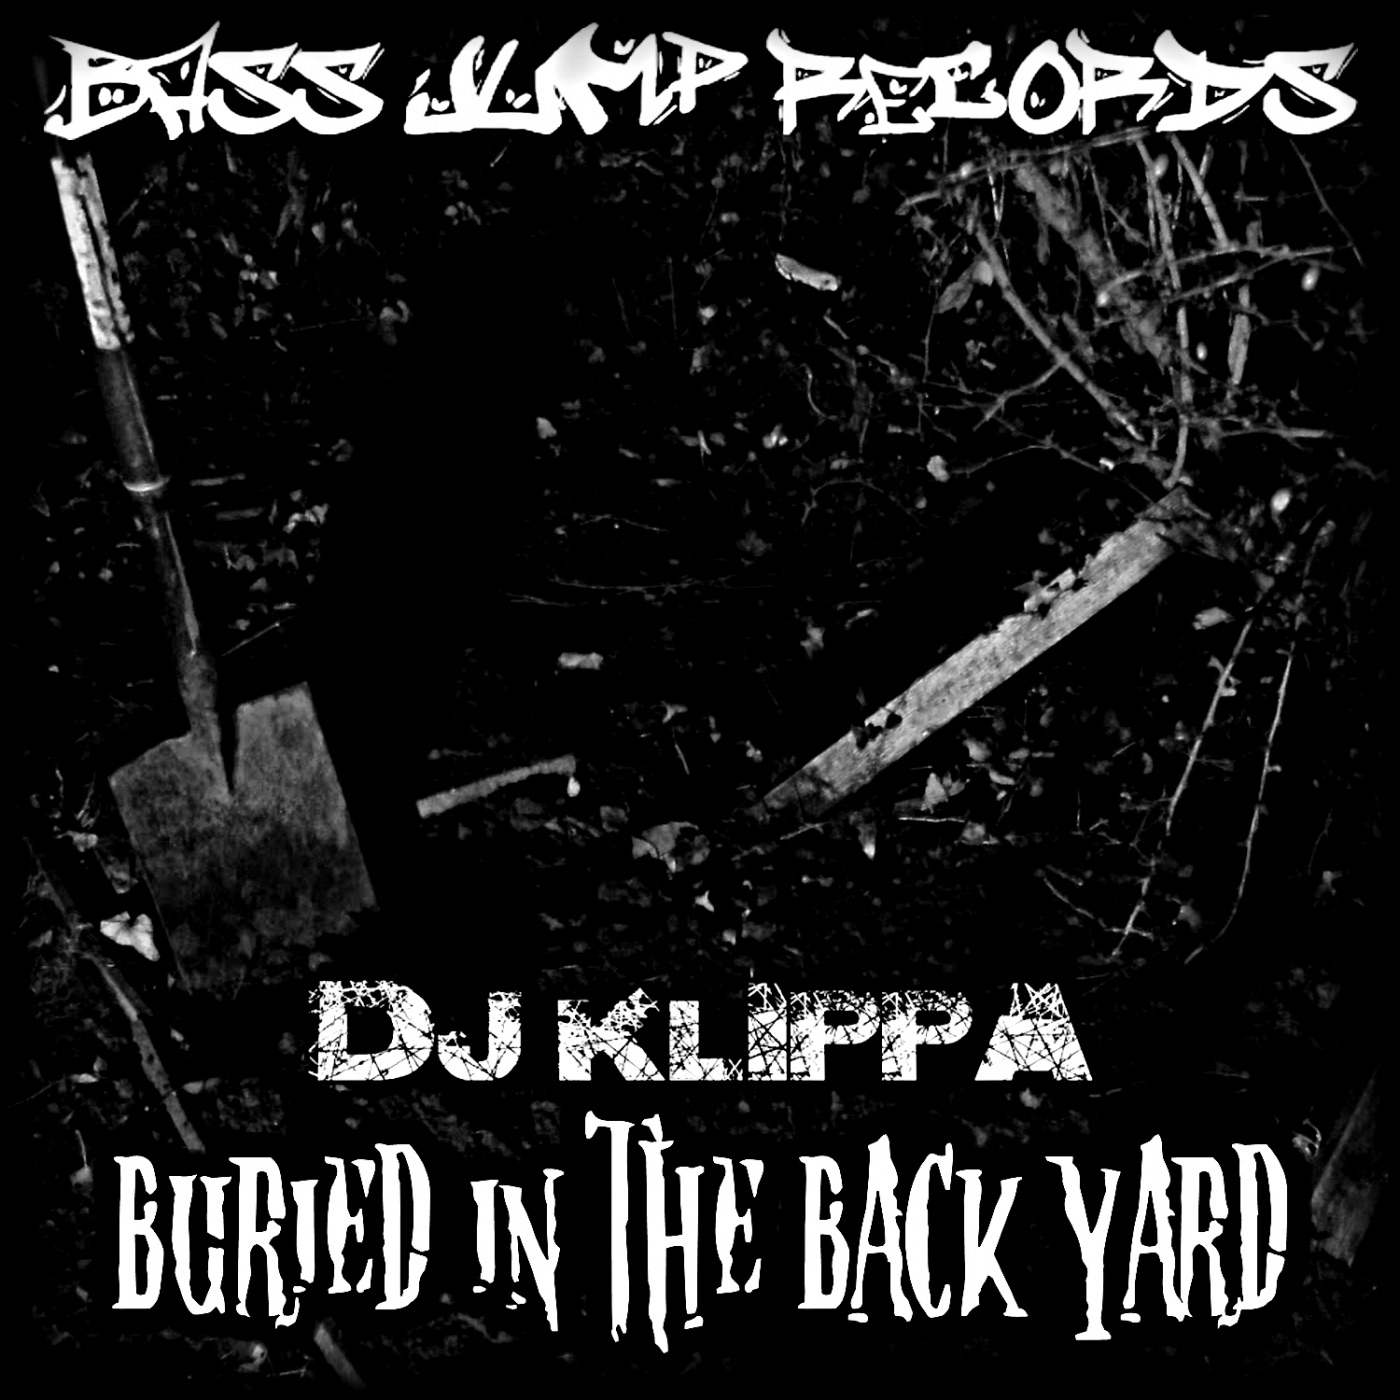 Buried in the Back Yard - Single